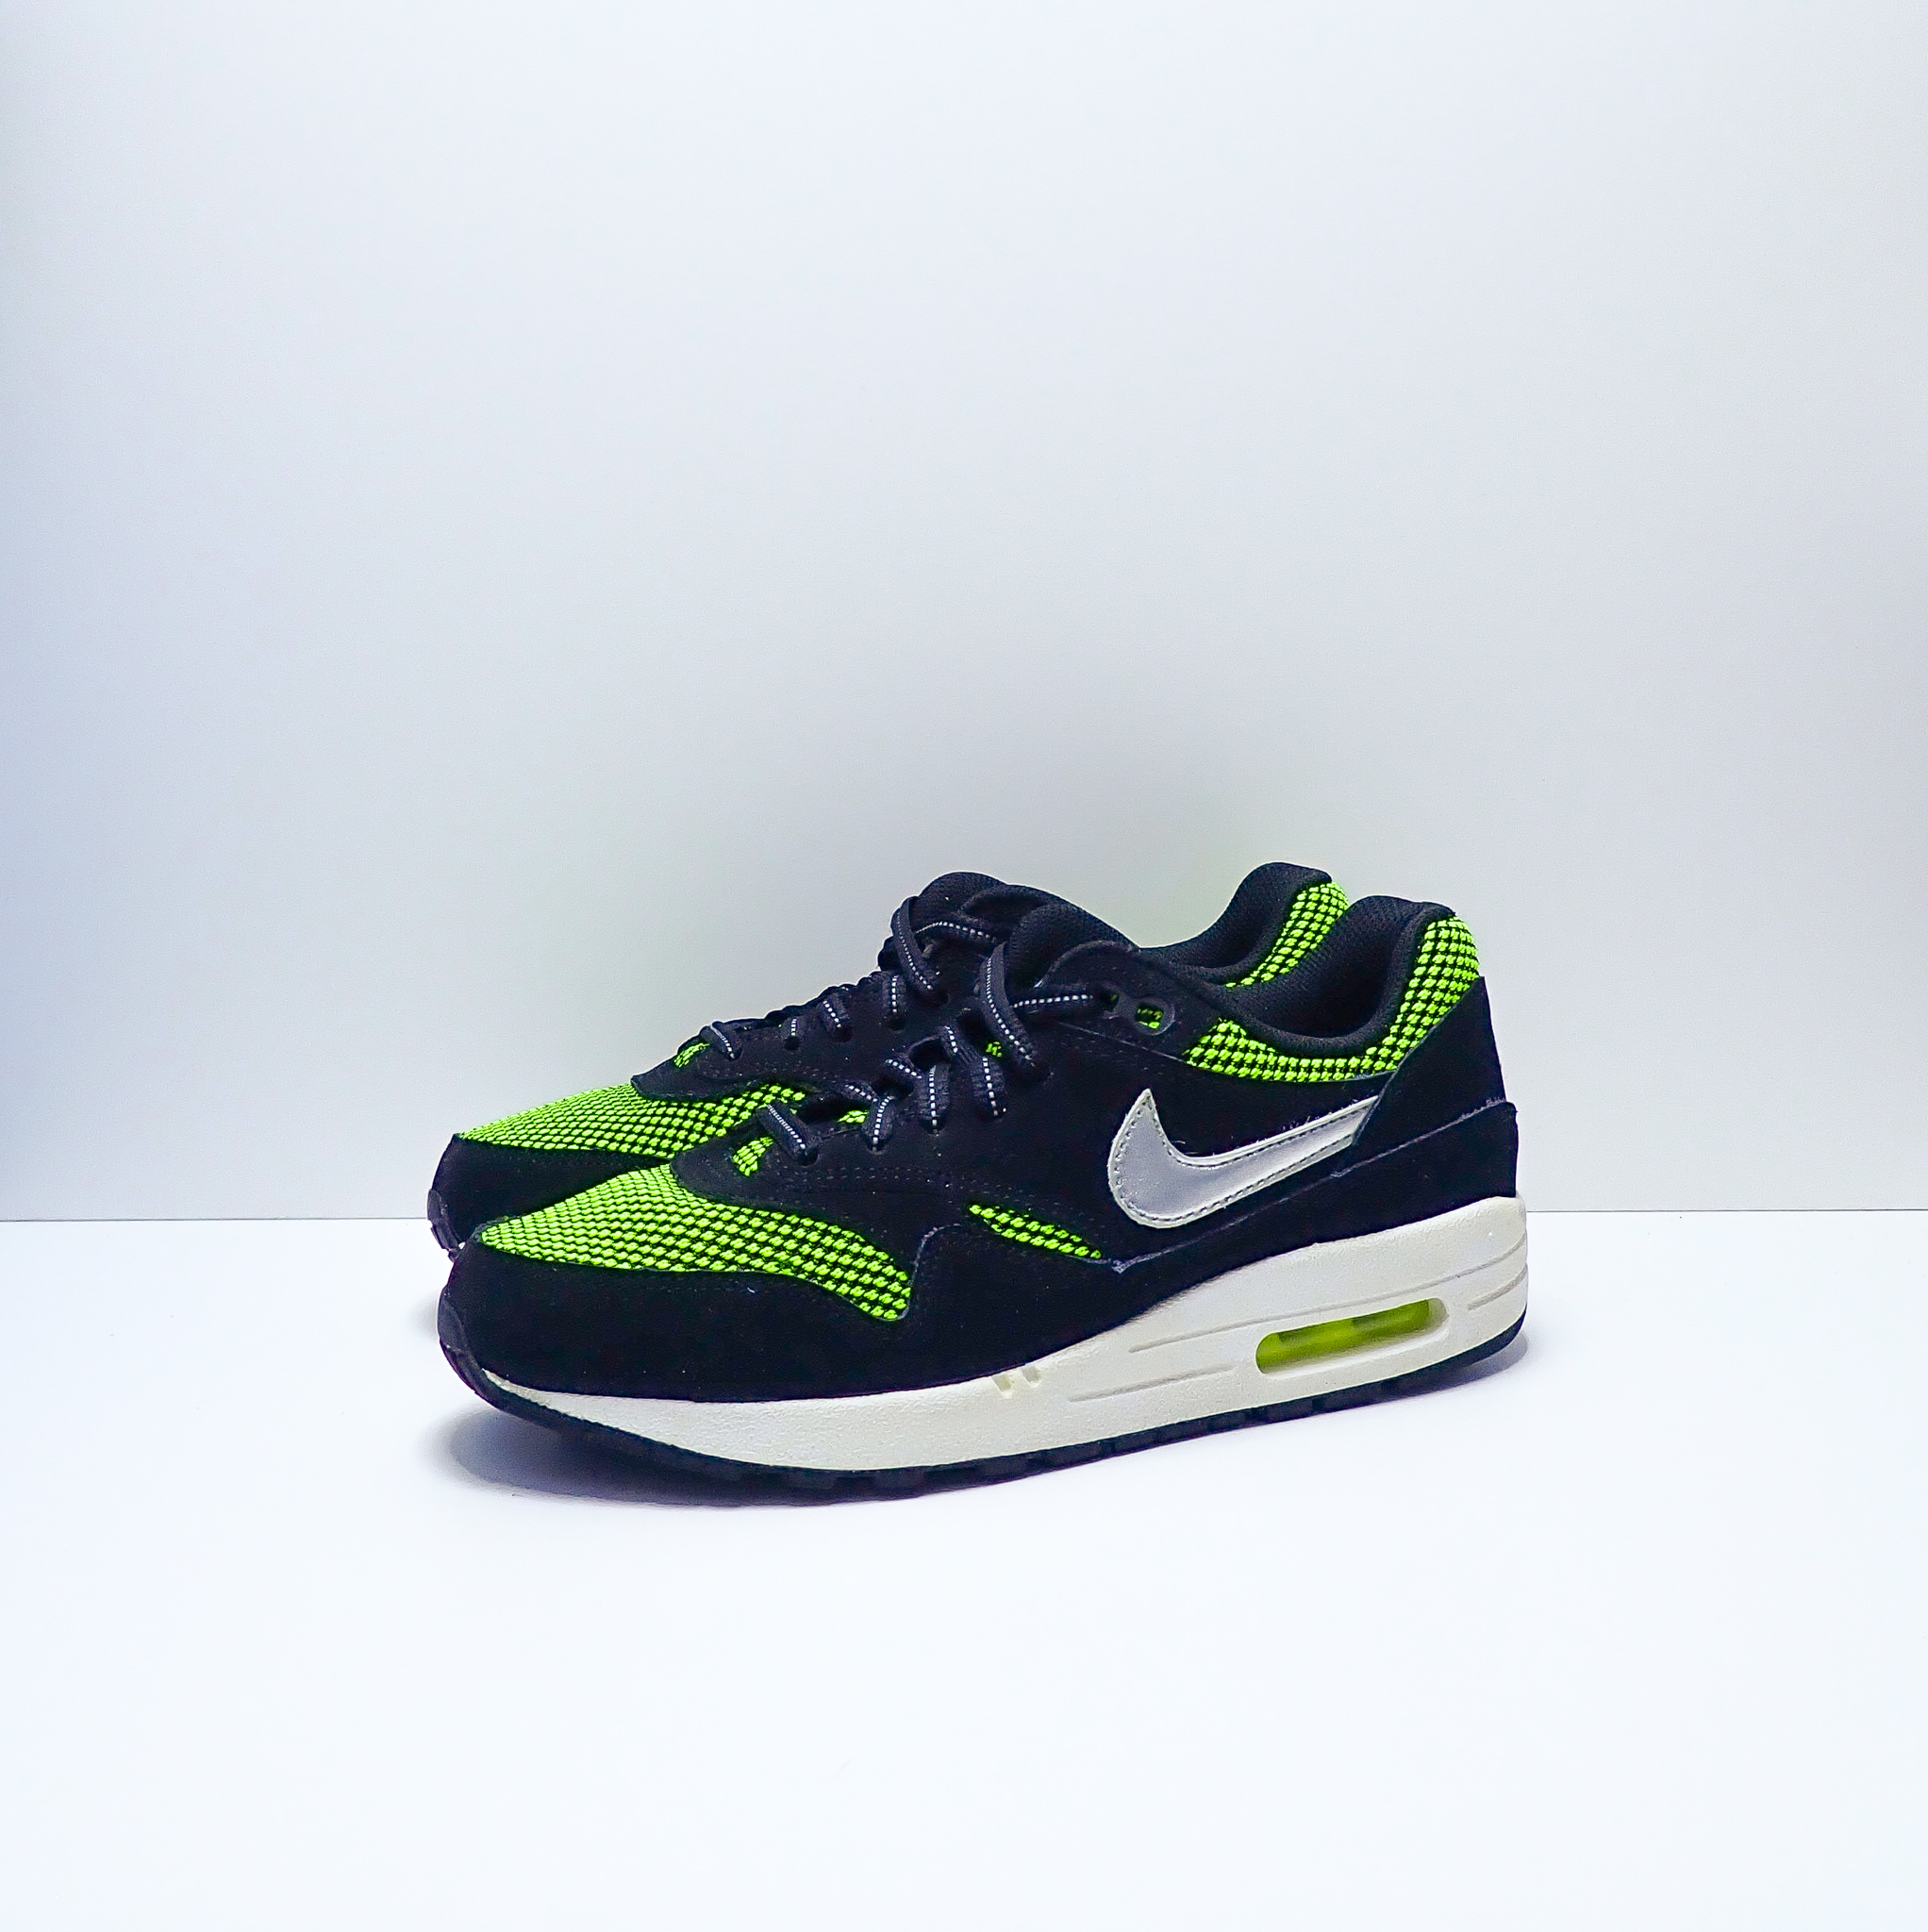 Nike Air Max 1 LE GS Black Silver Volt